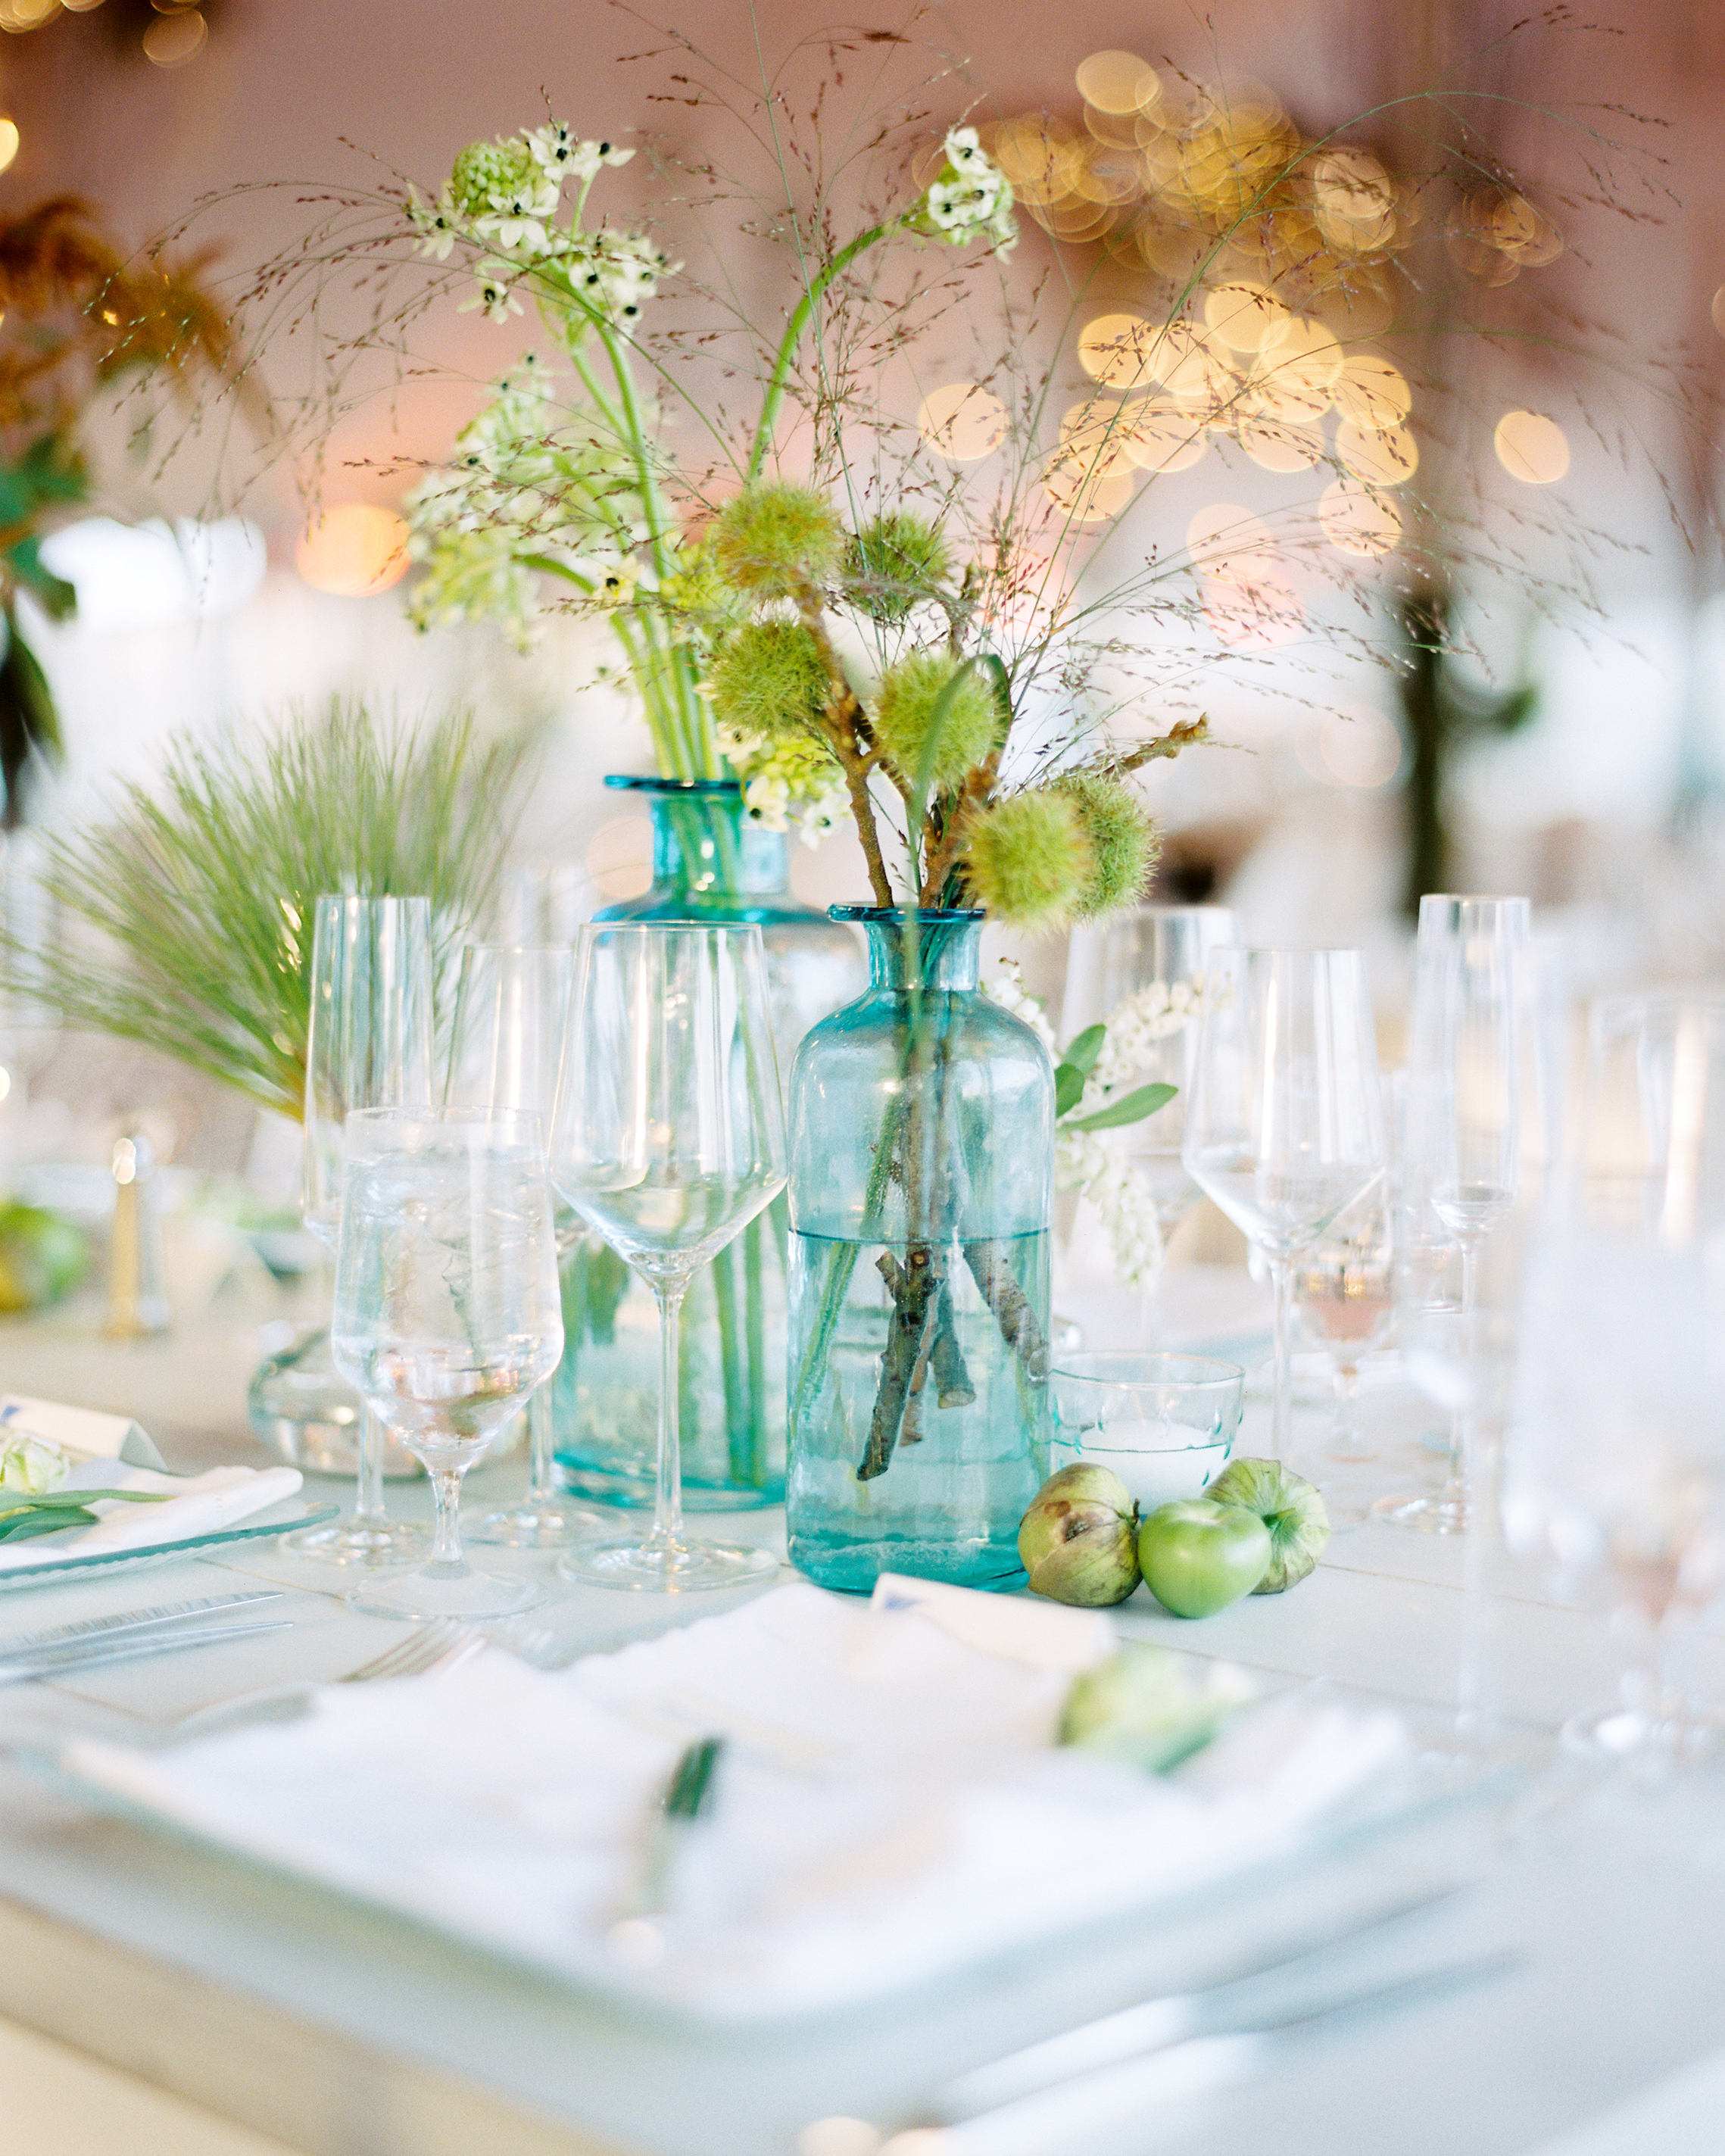 molly-thomas-tablescape-033-wds109687.jpg